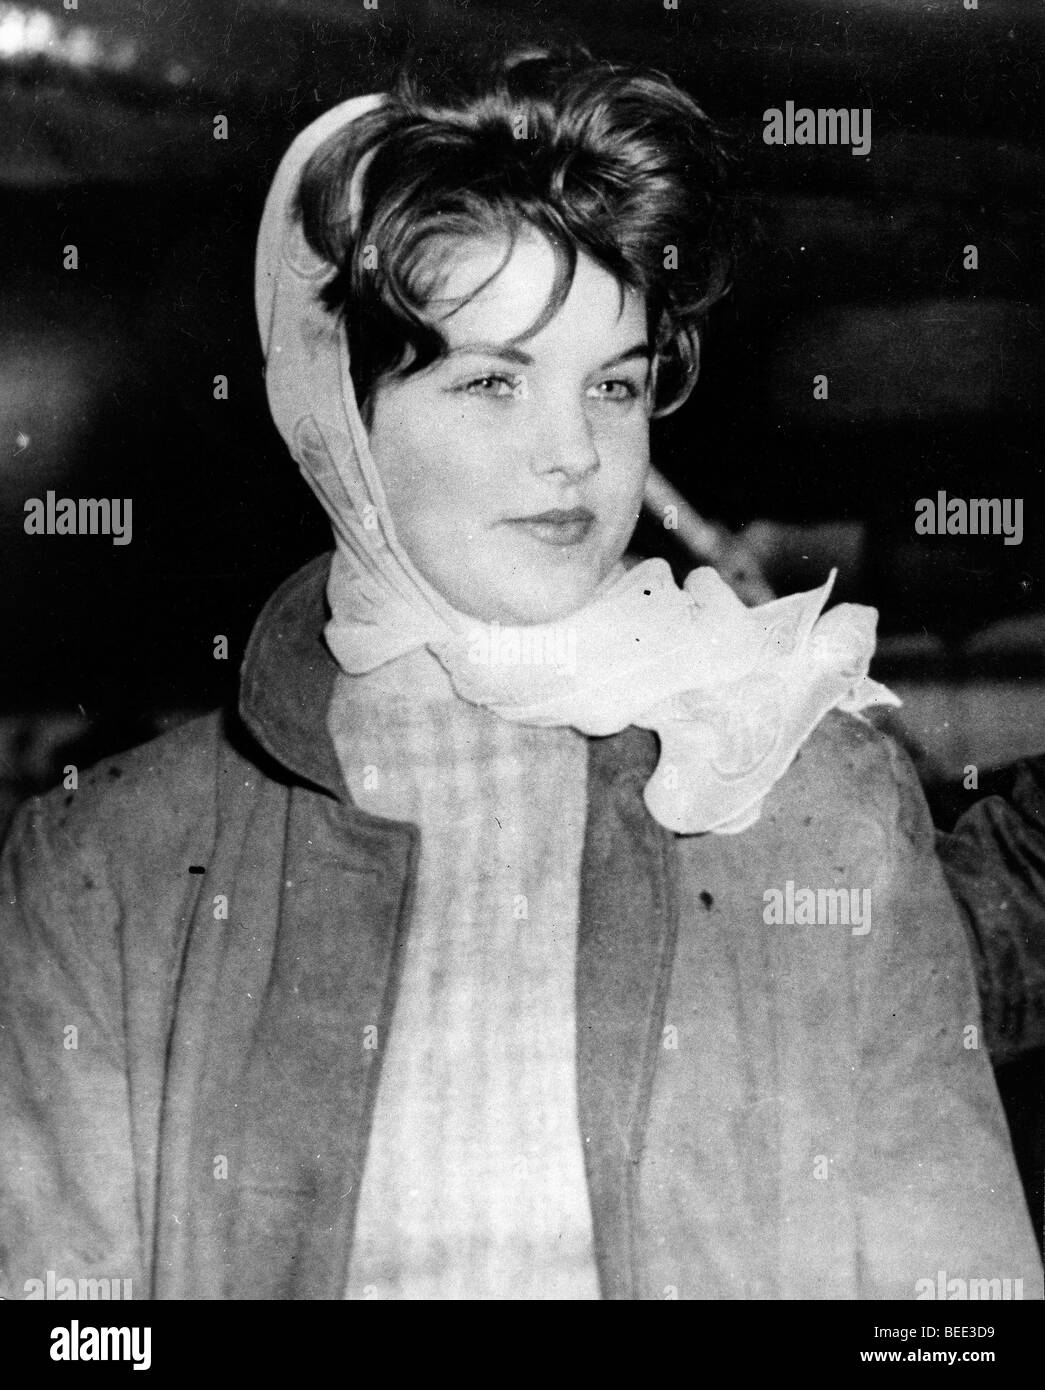 Priscilla Presley sees off at Elvis at the airport - Stock Image